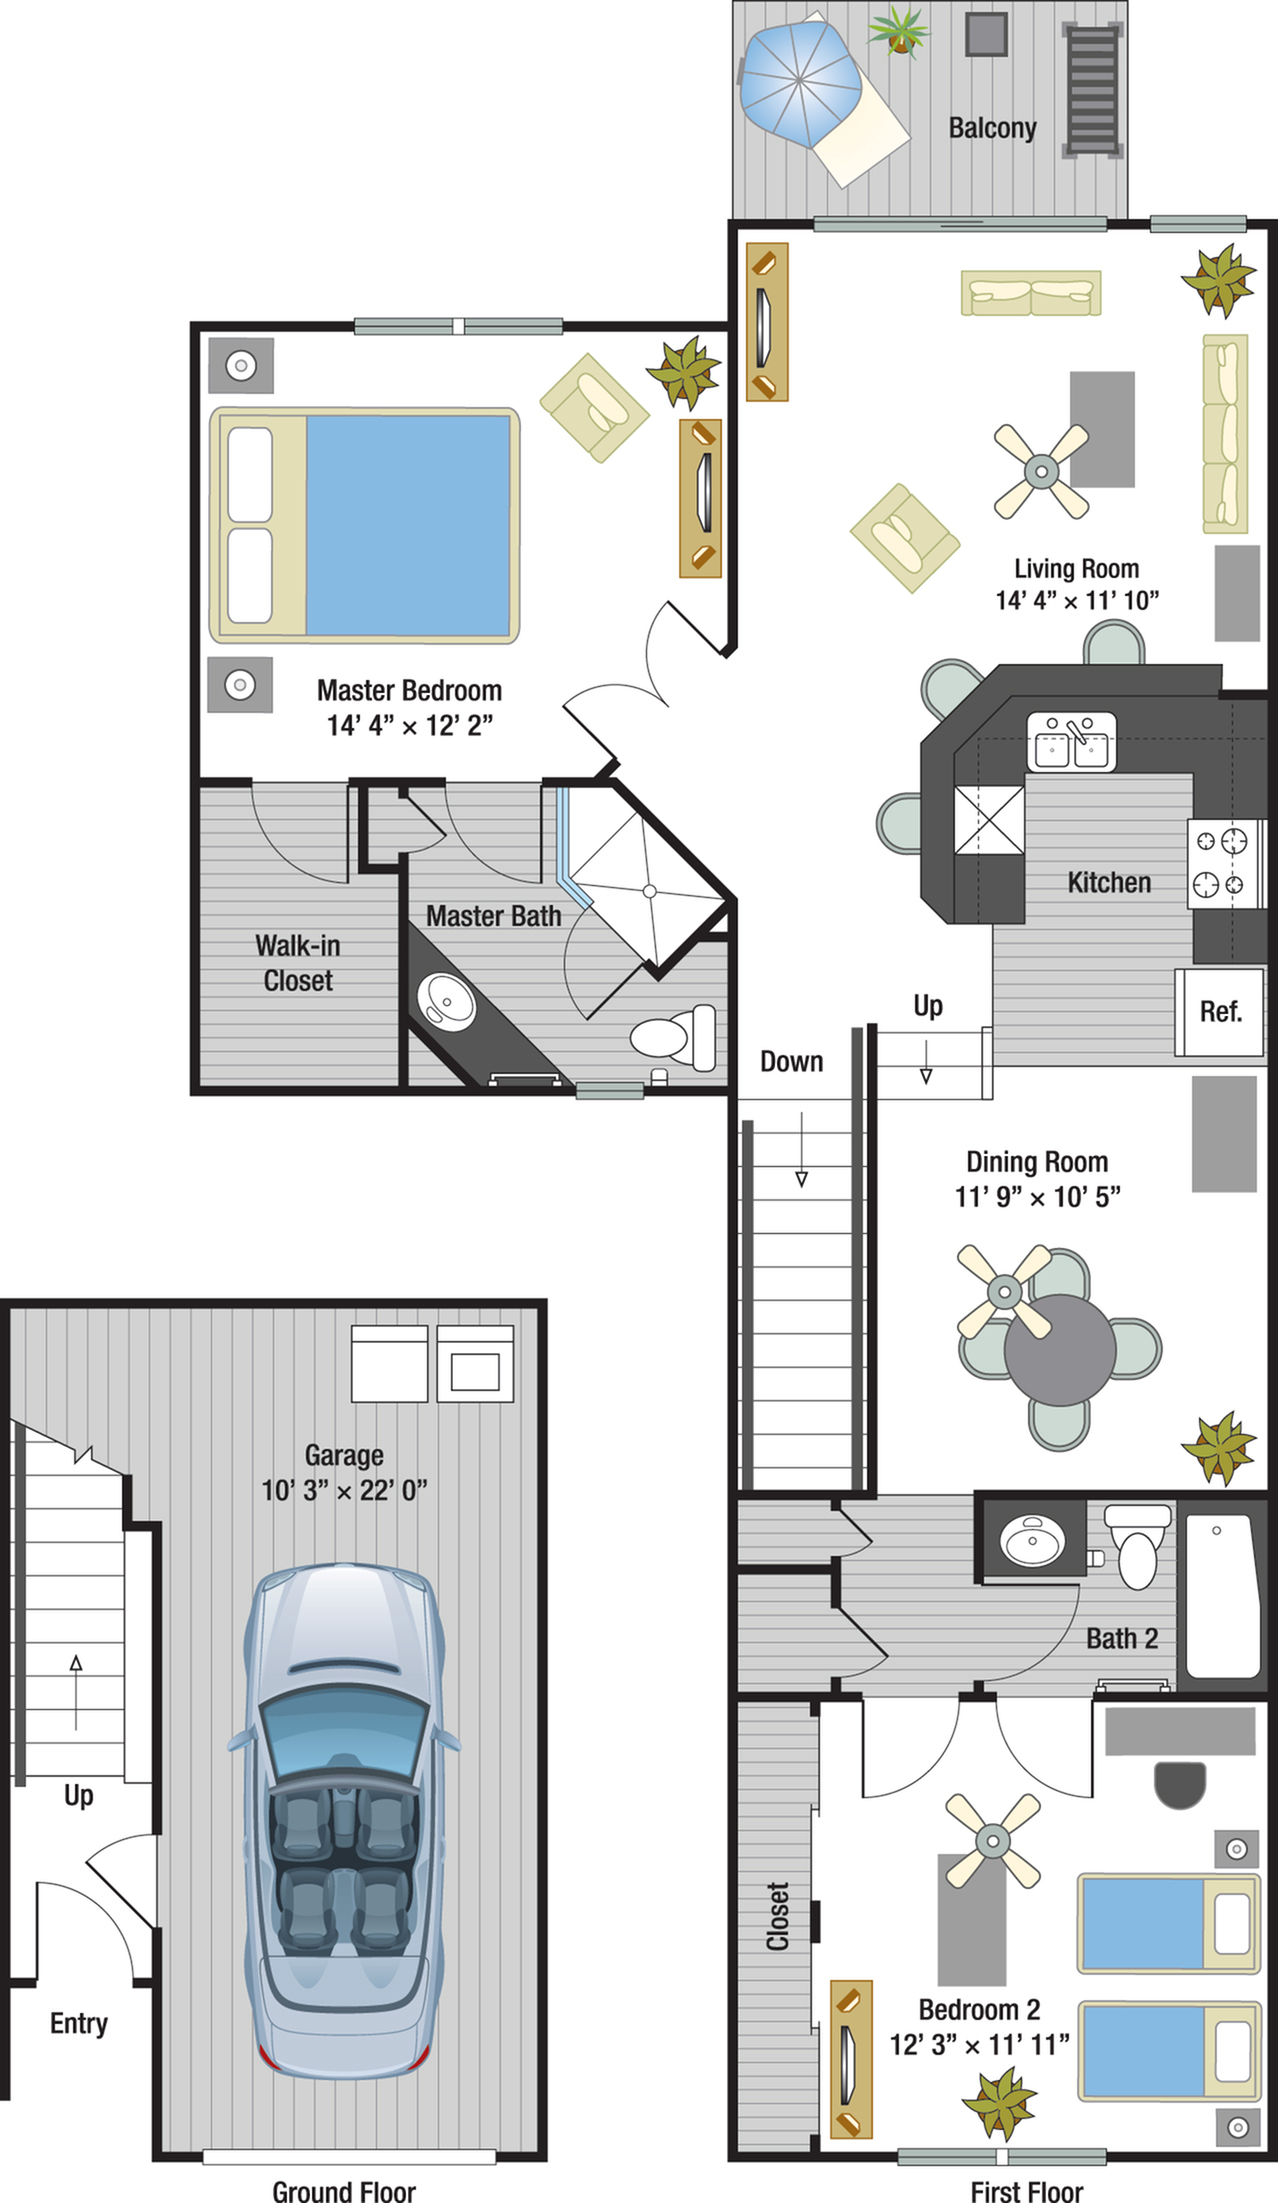 Marbella two bedroom two bathroom town home floor plan